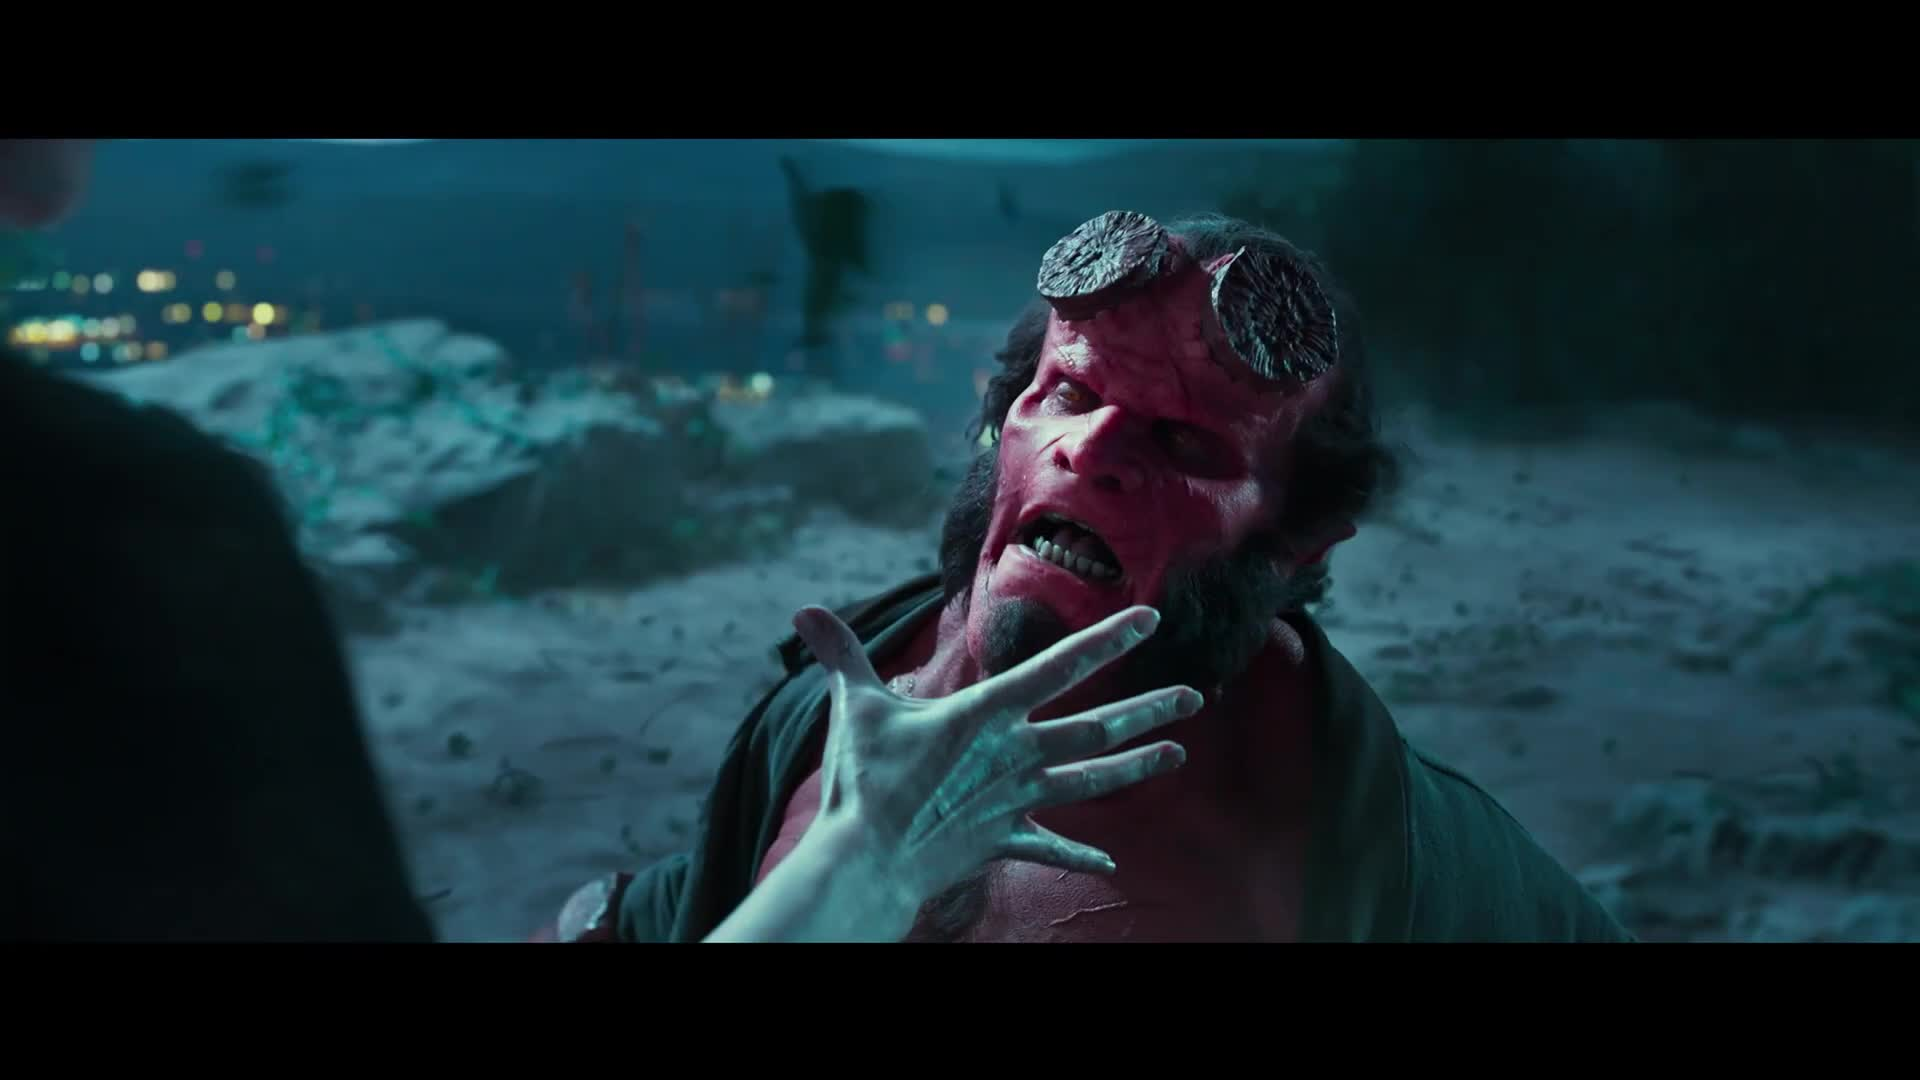 Trailer, Kino, Kinofilm, Superheld, Comic, lionsgate, Hellboy, Hellboy - Call Of Darkness, Call Of Darkness